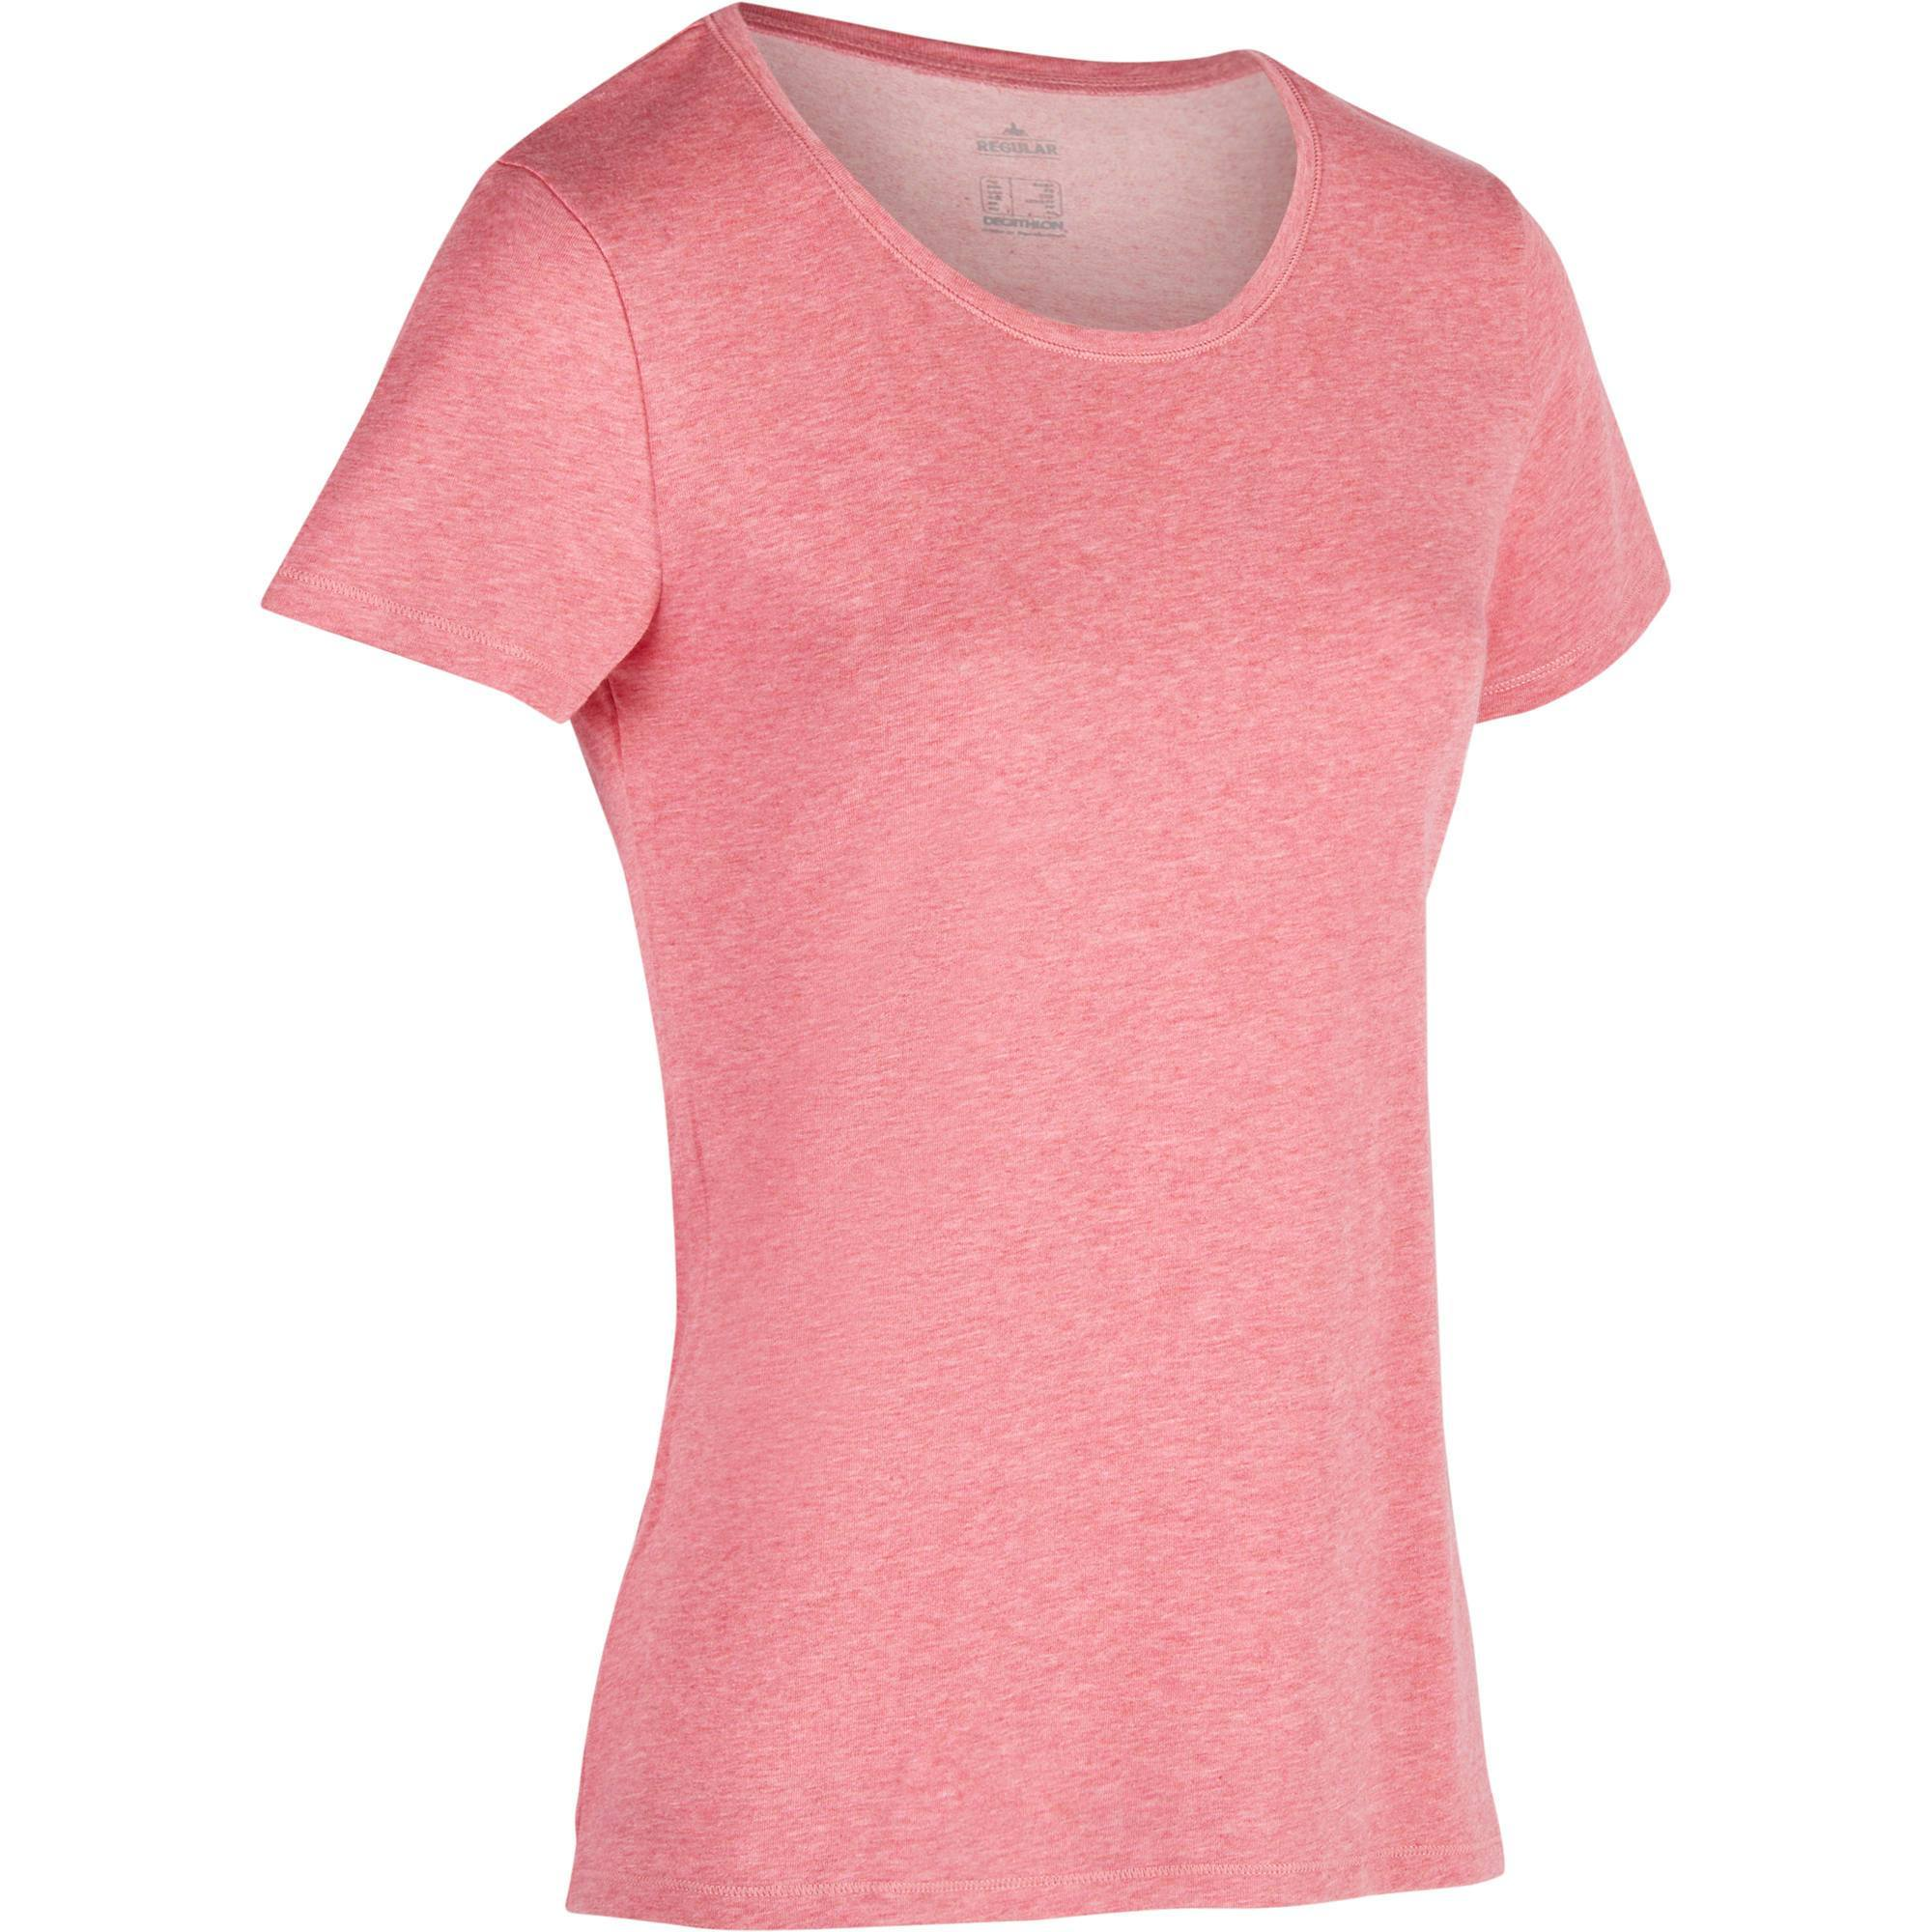 T-Shirt 500 regular Gym Stretching femme rose foncé chiné